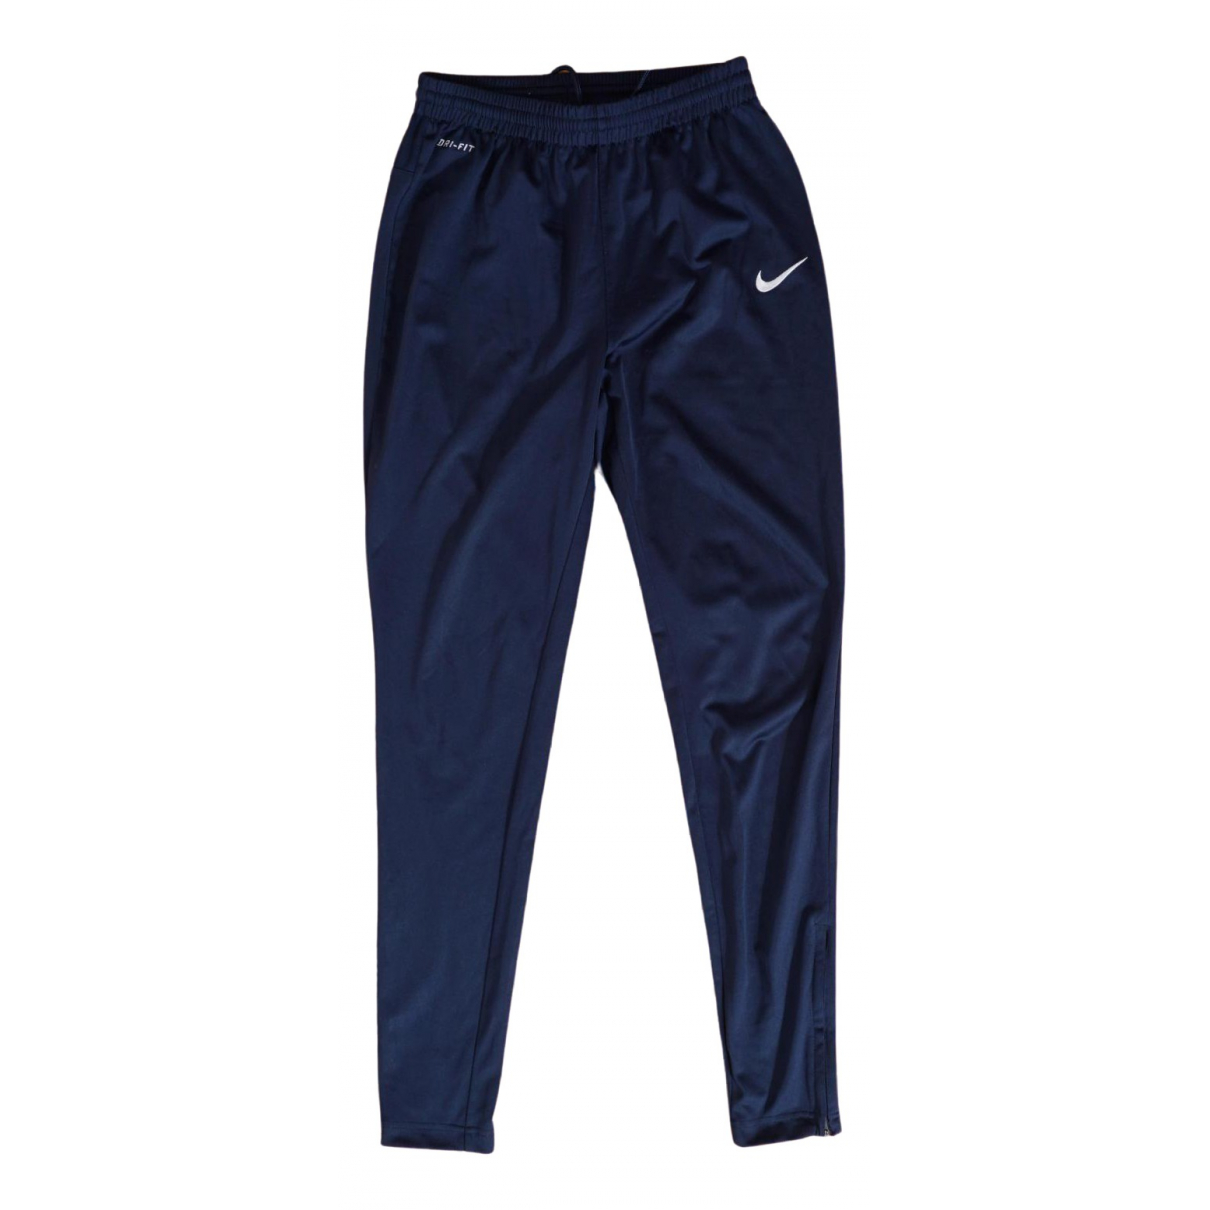 Nike \N Navy Trousers for Women S International